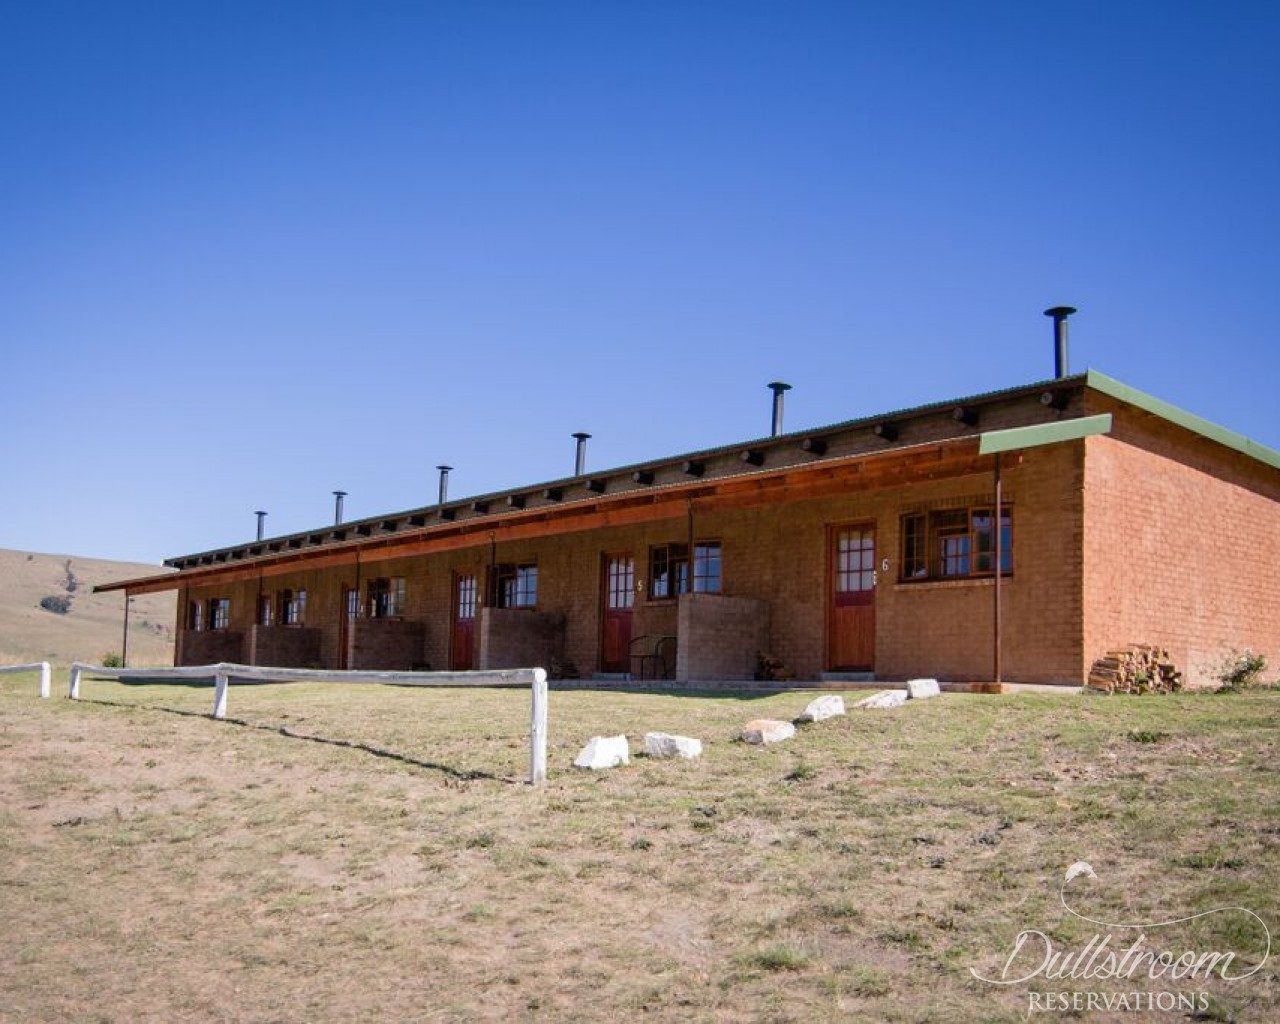 The Red Barn: The Stables - accommodation in Dullstroom ...